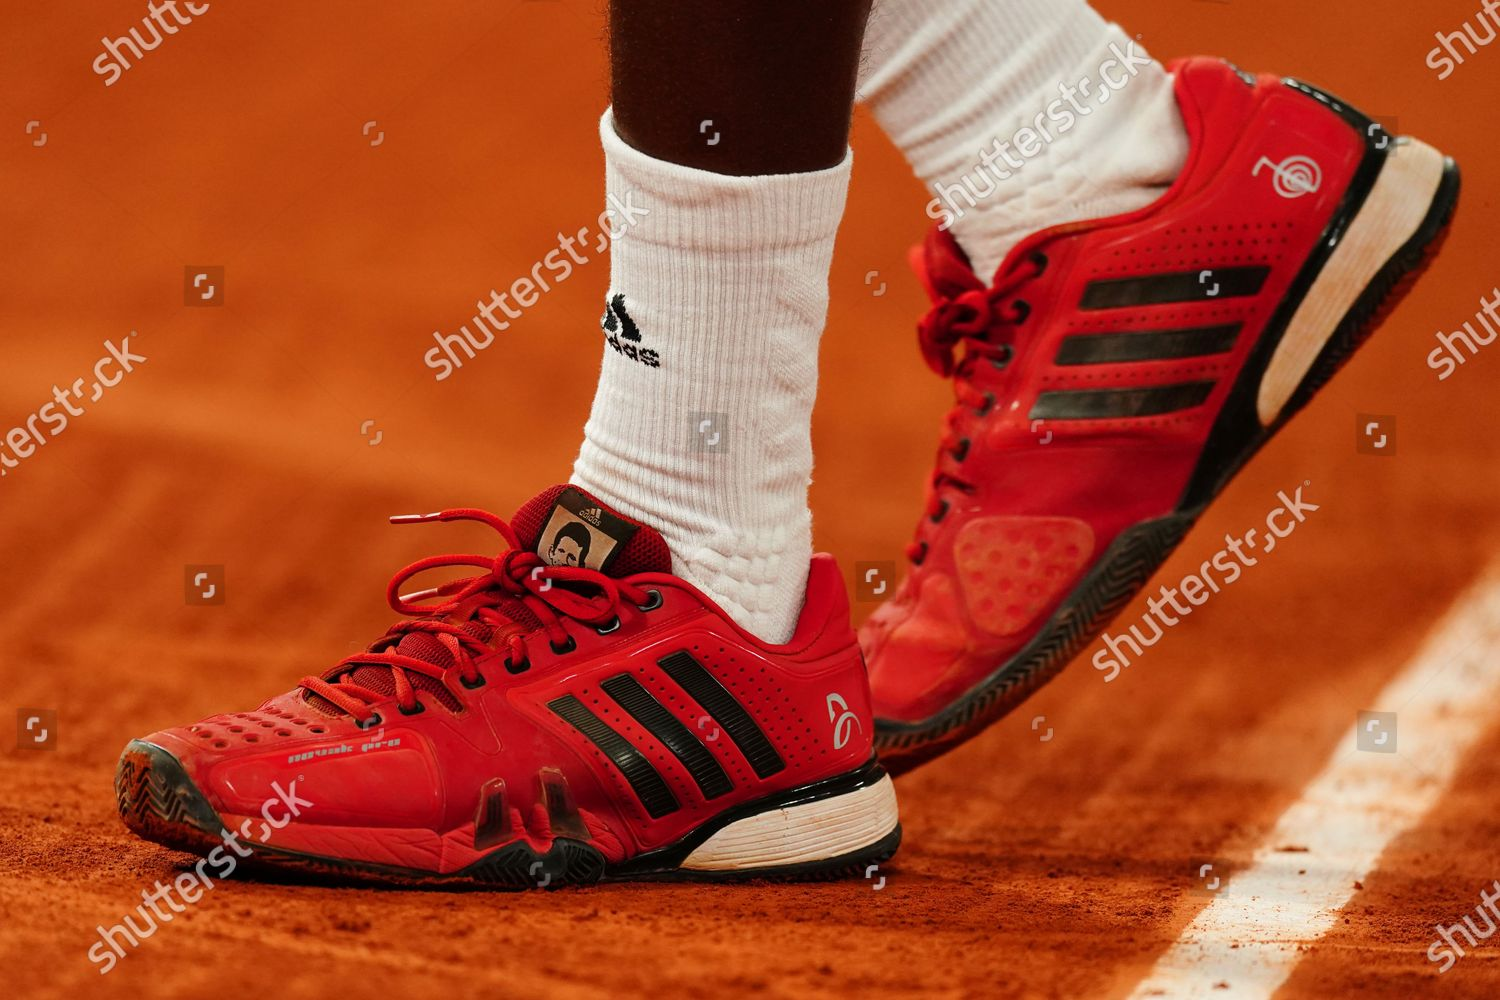 Mikael Ymer Wearing Djokovic Branded Tennis Shoes Editorial Stock Photo Stock Image Shutterstock